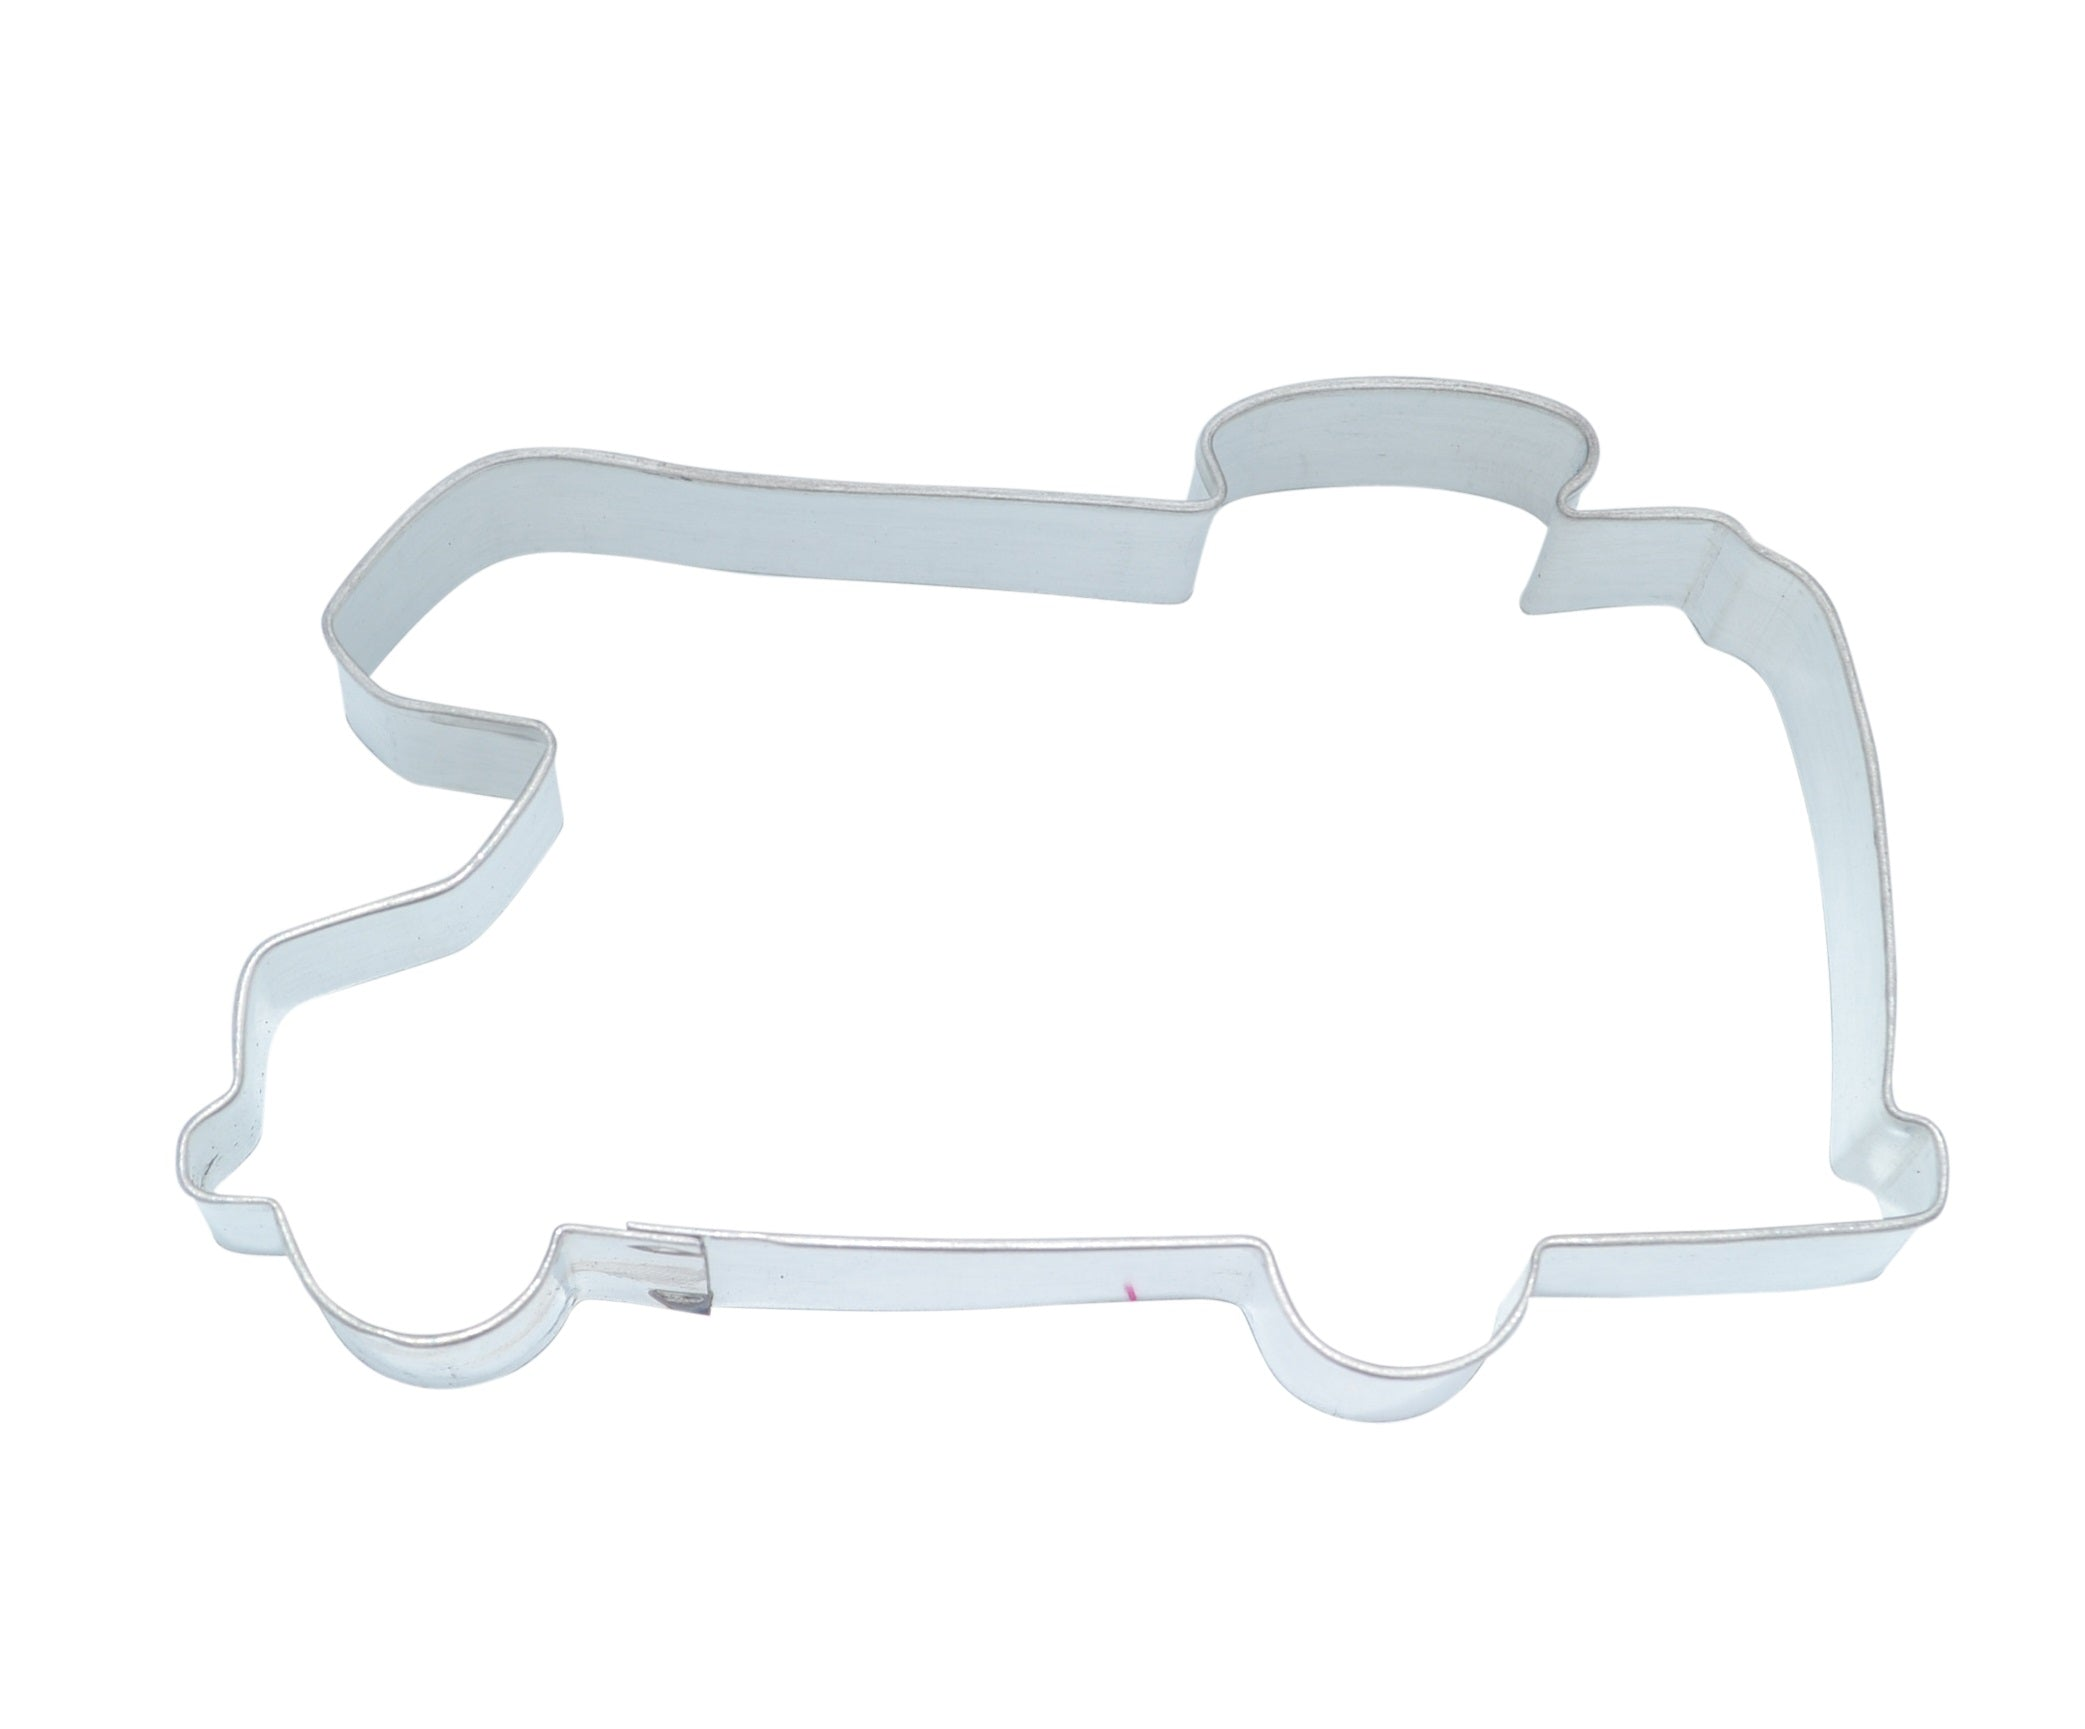 RV Camper 11cm Cookie Cutter-Cookie Cutter Shop Australia